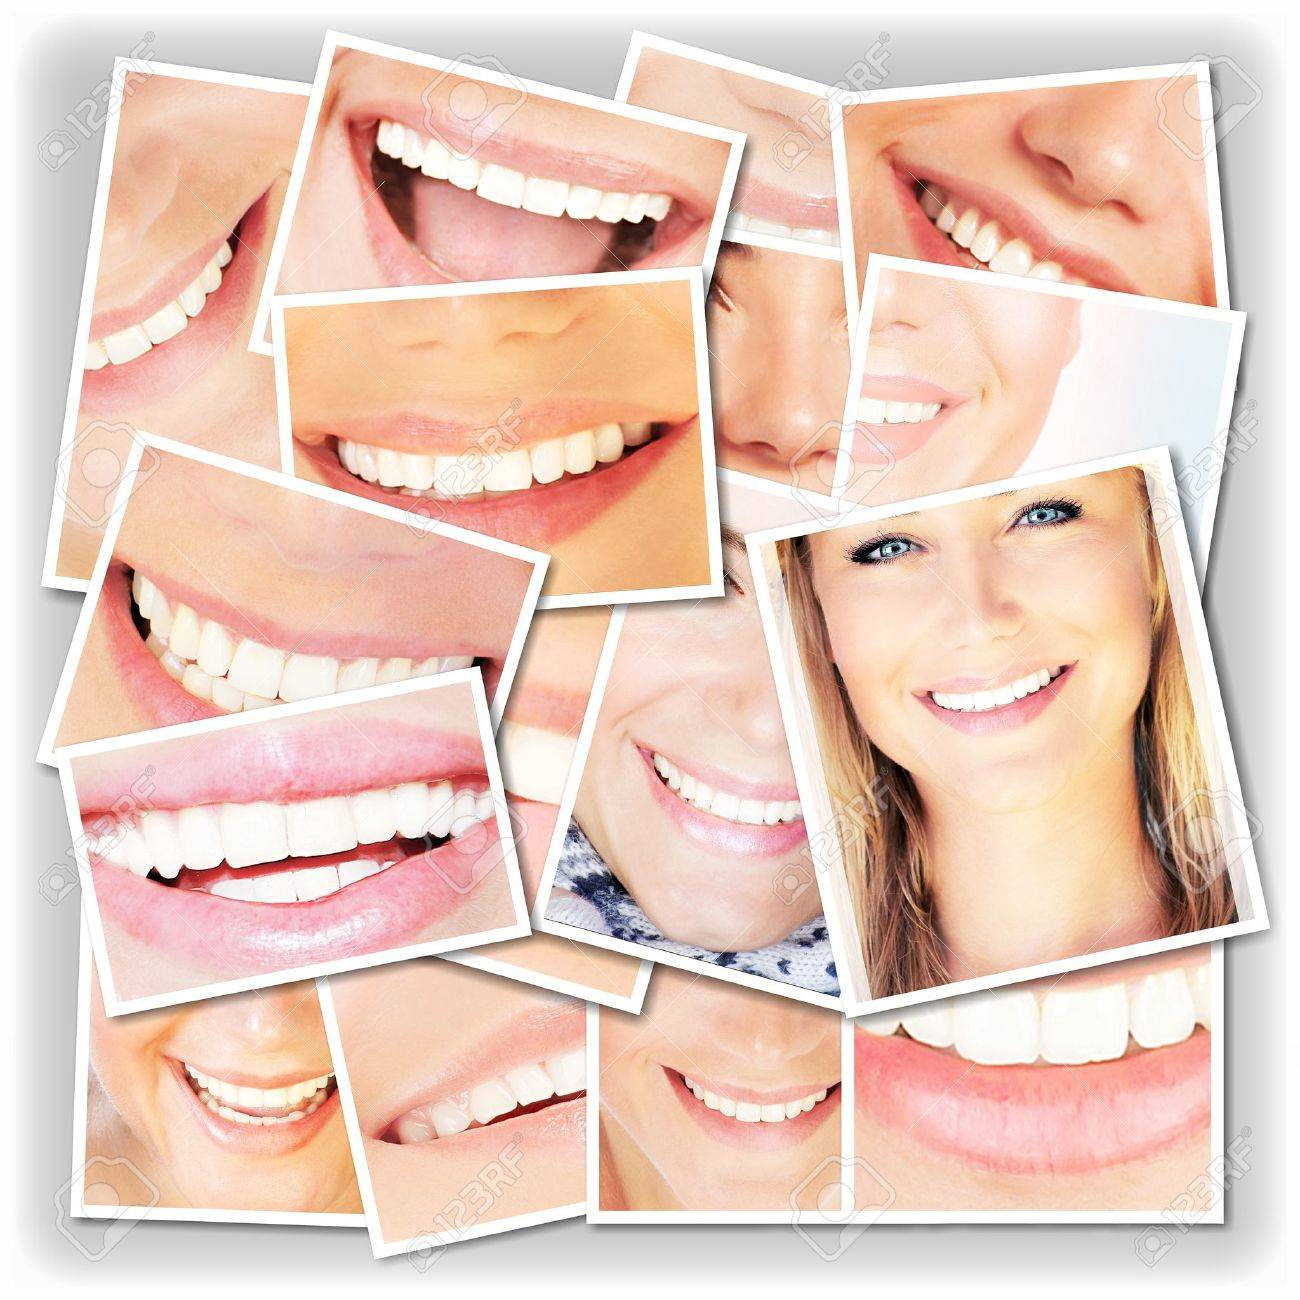 Smiling faces collage, happy young girls laughing, close up on beautiful healthy female lips and teeth, dental care concept Stock Photo - 13077473